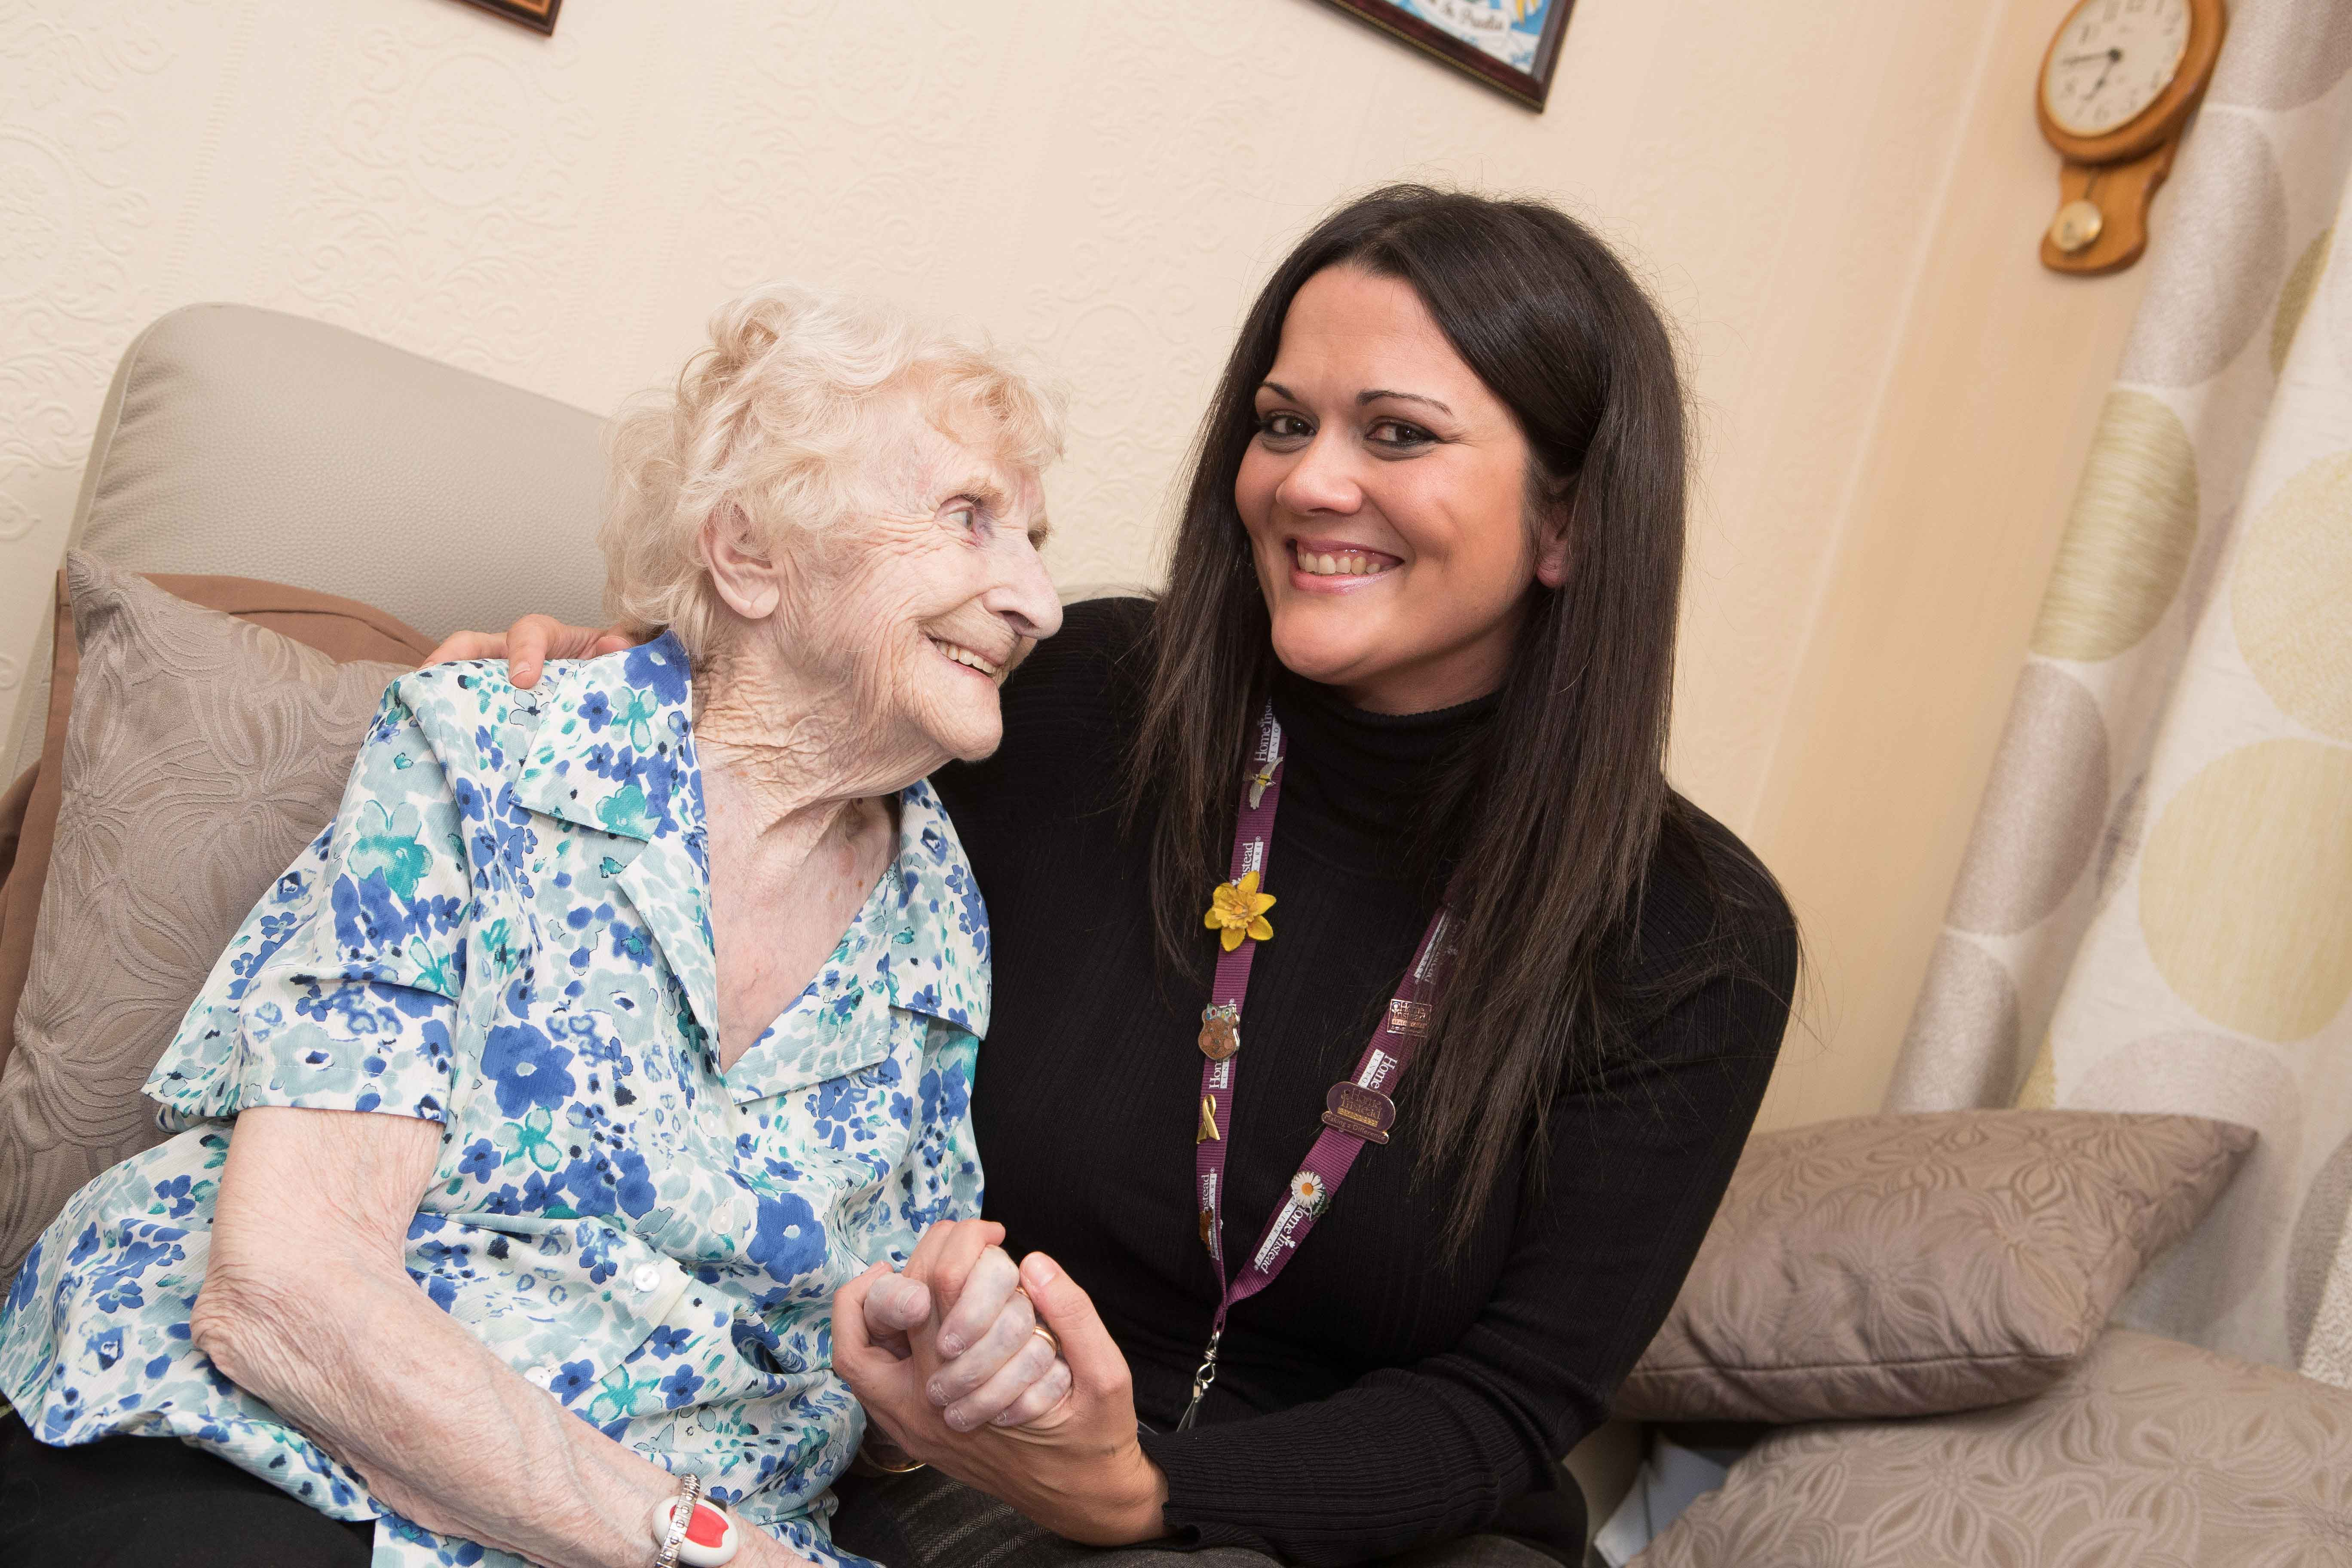 10,000 jobs in elder care set to change the face of ageing